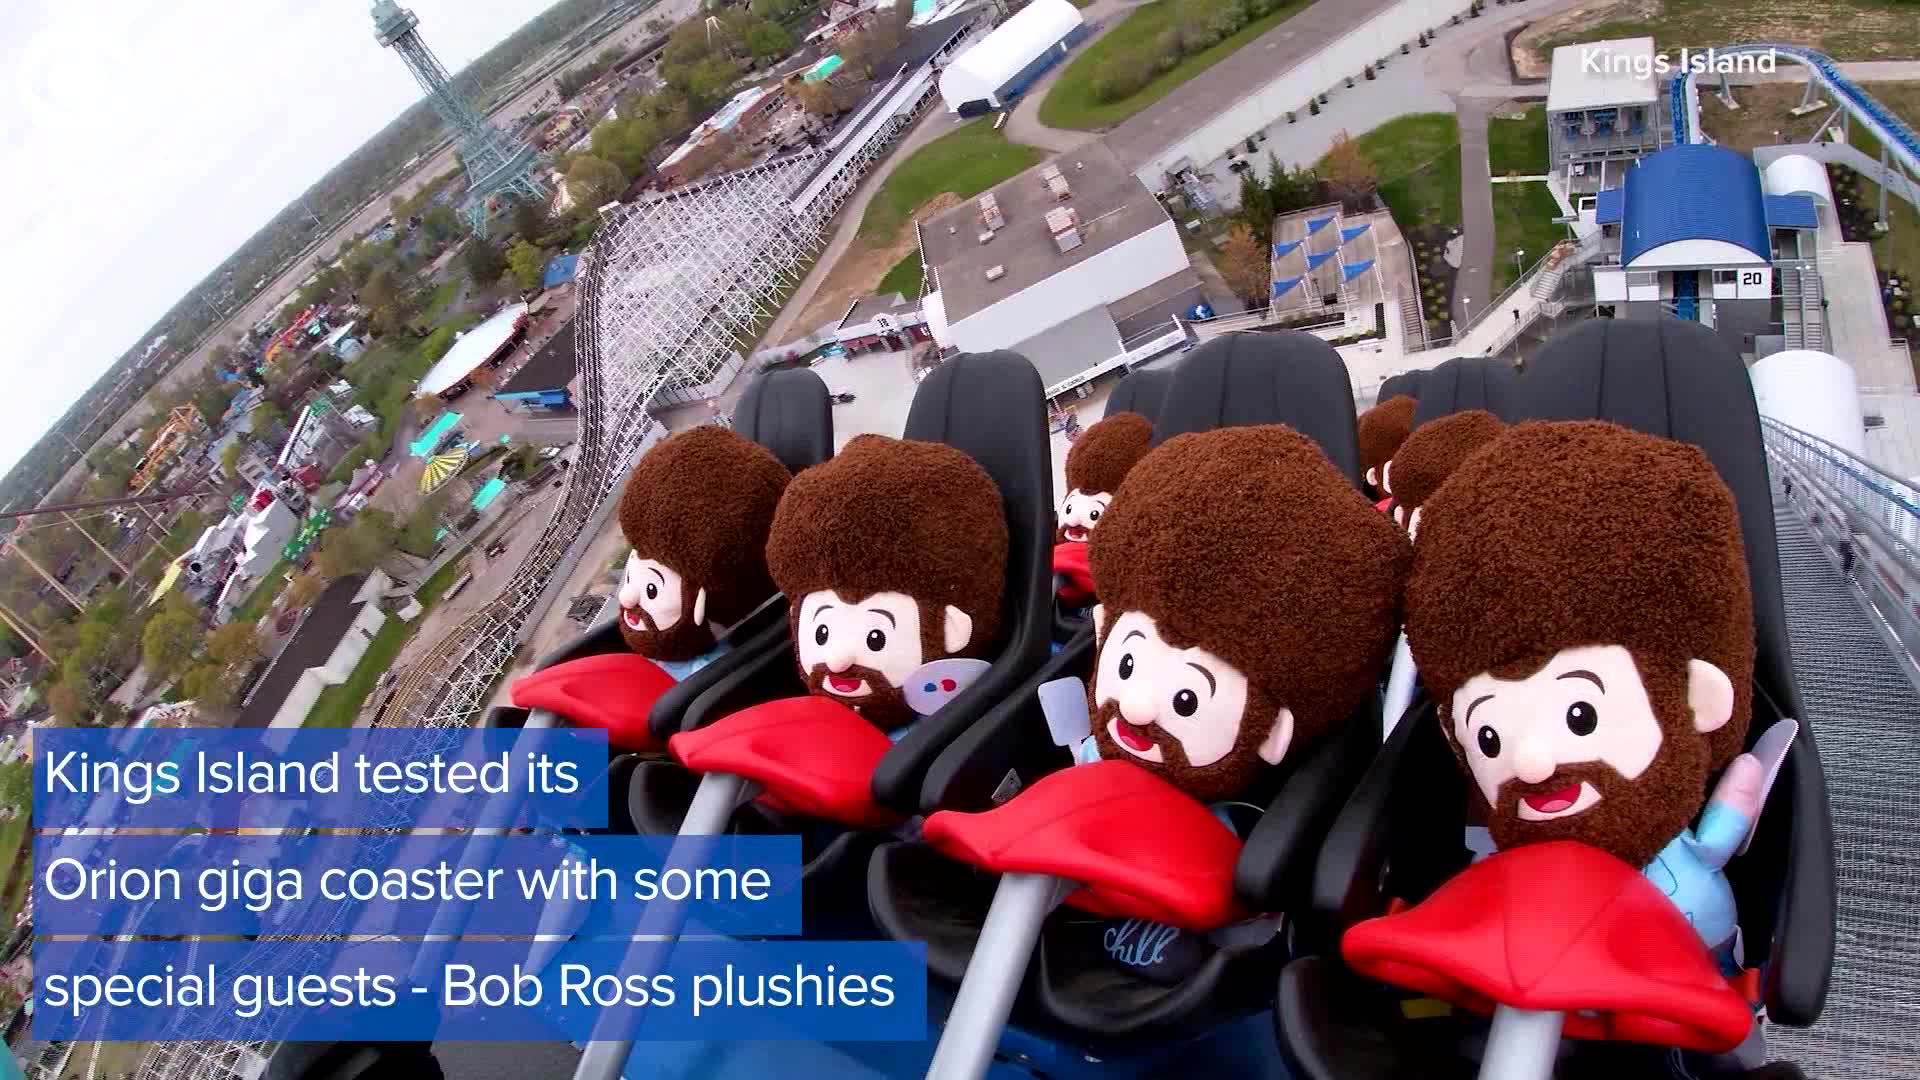 Bob Ross Plushies Ride On Roller Coaster